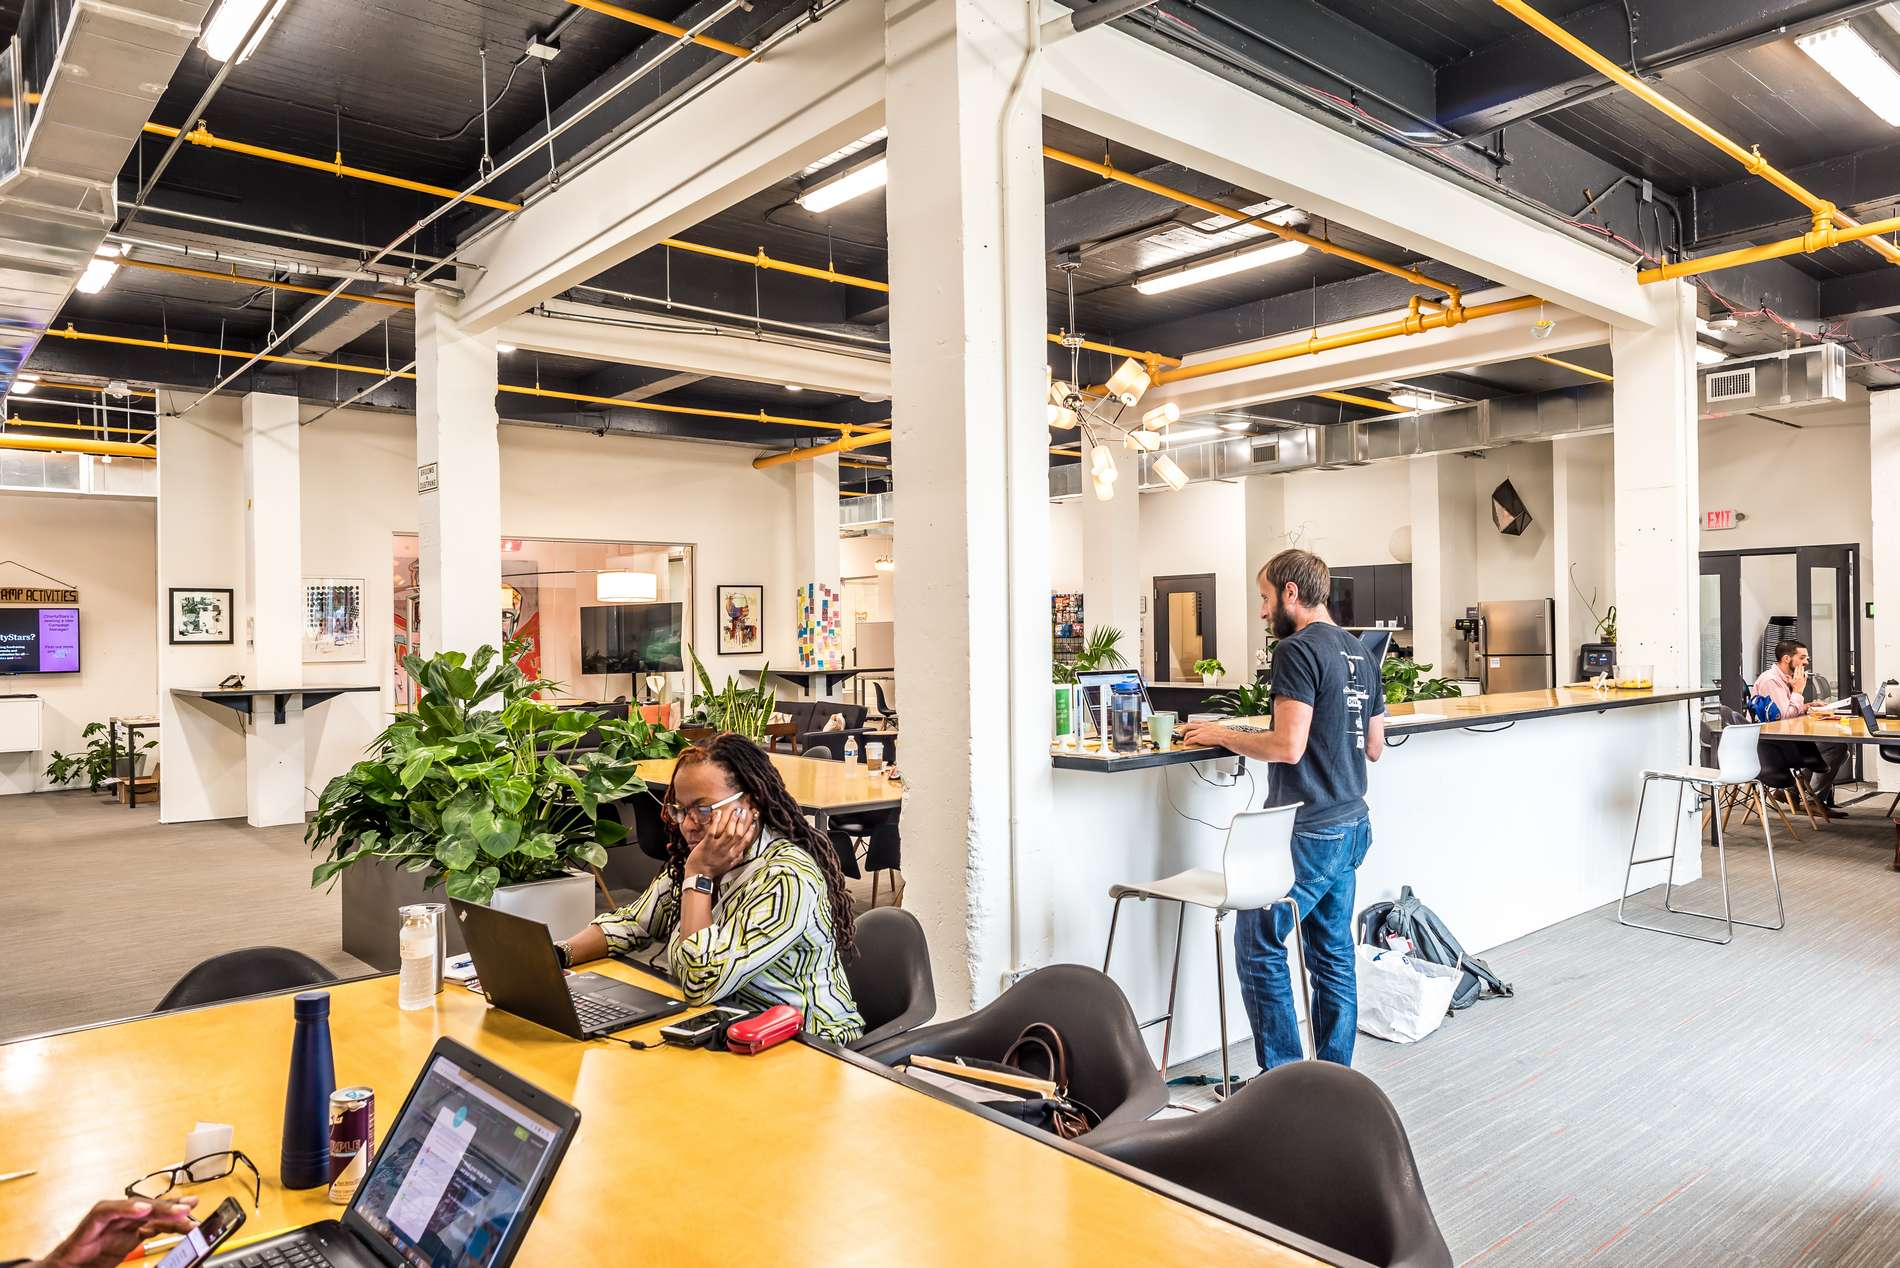 Advent co-working offers a great space to conduct a job search and to network